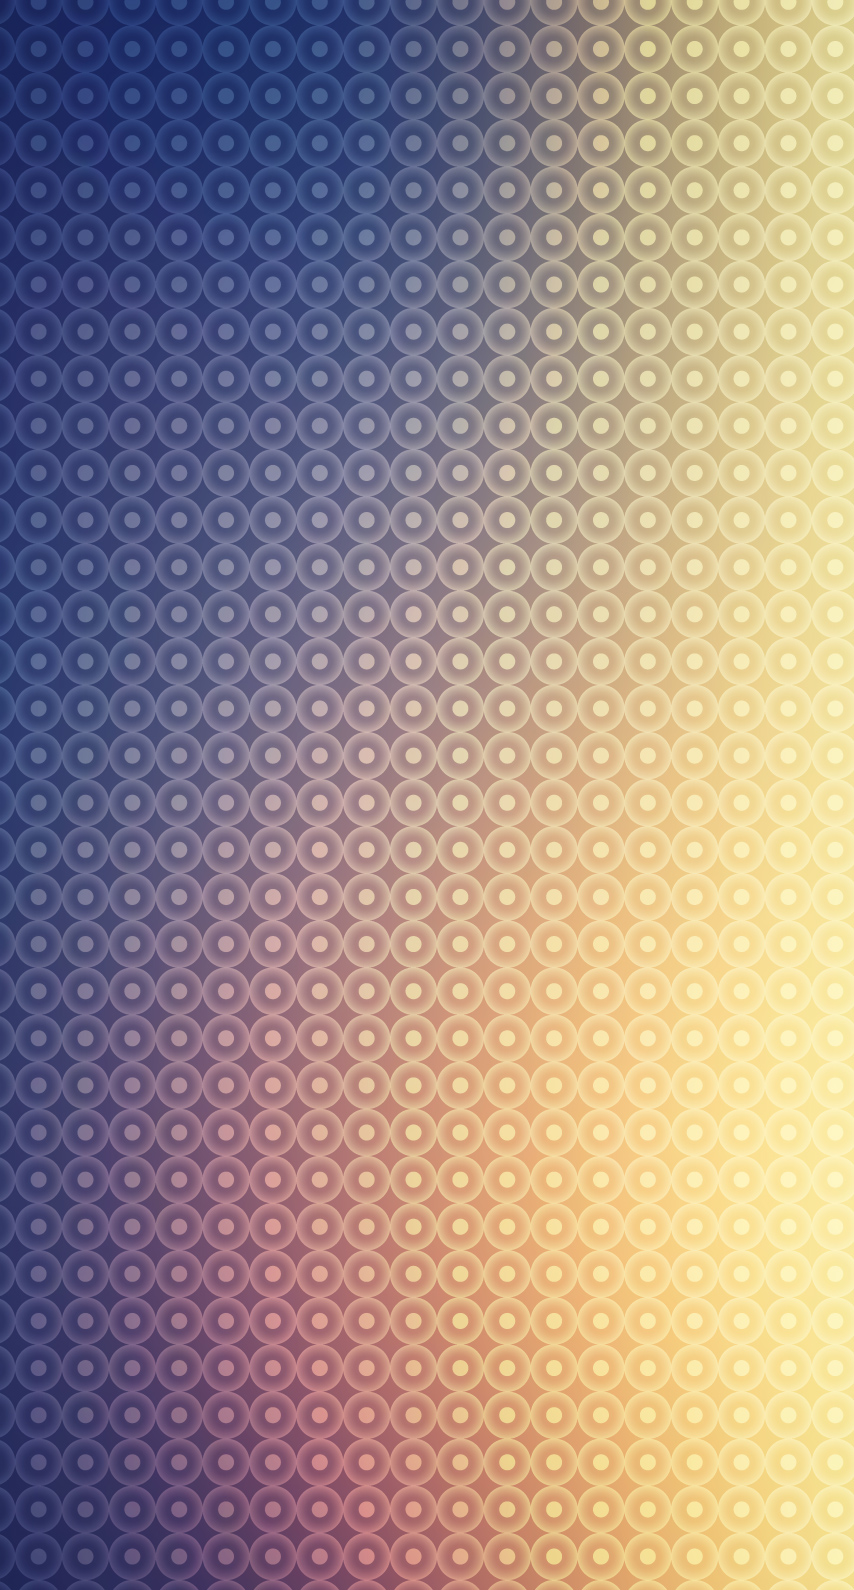 dots, abstract